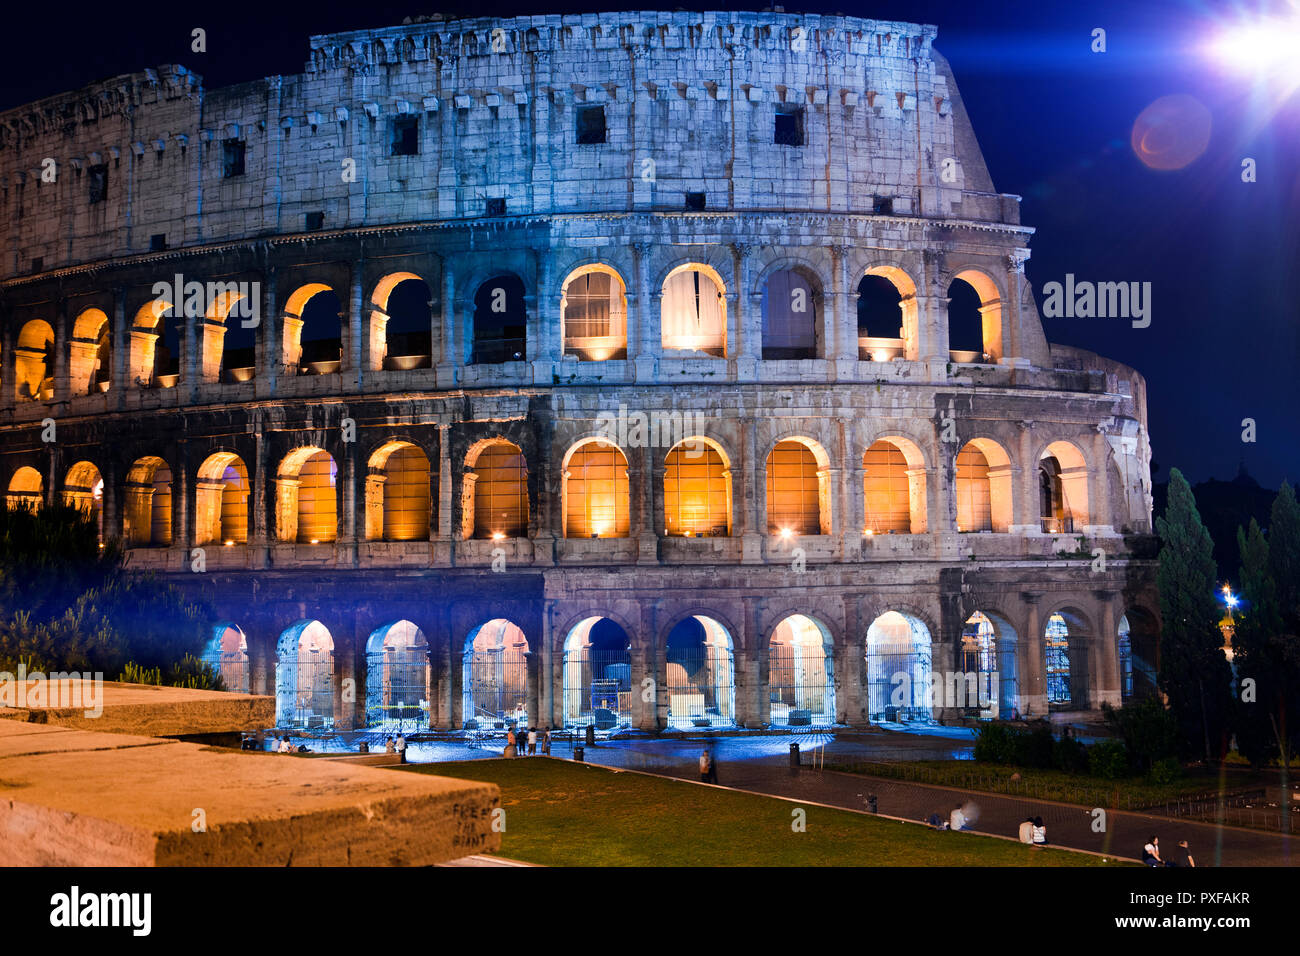 Italy. Rome. The night Collosseo - Stock Image